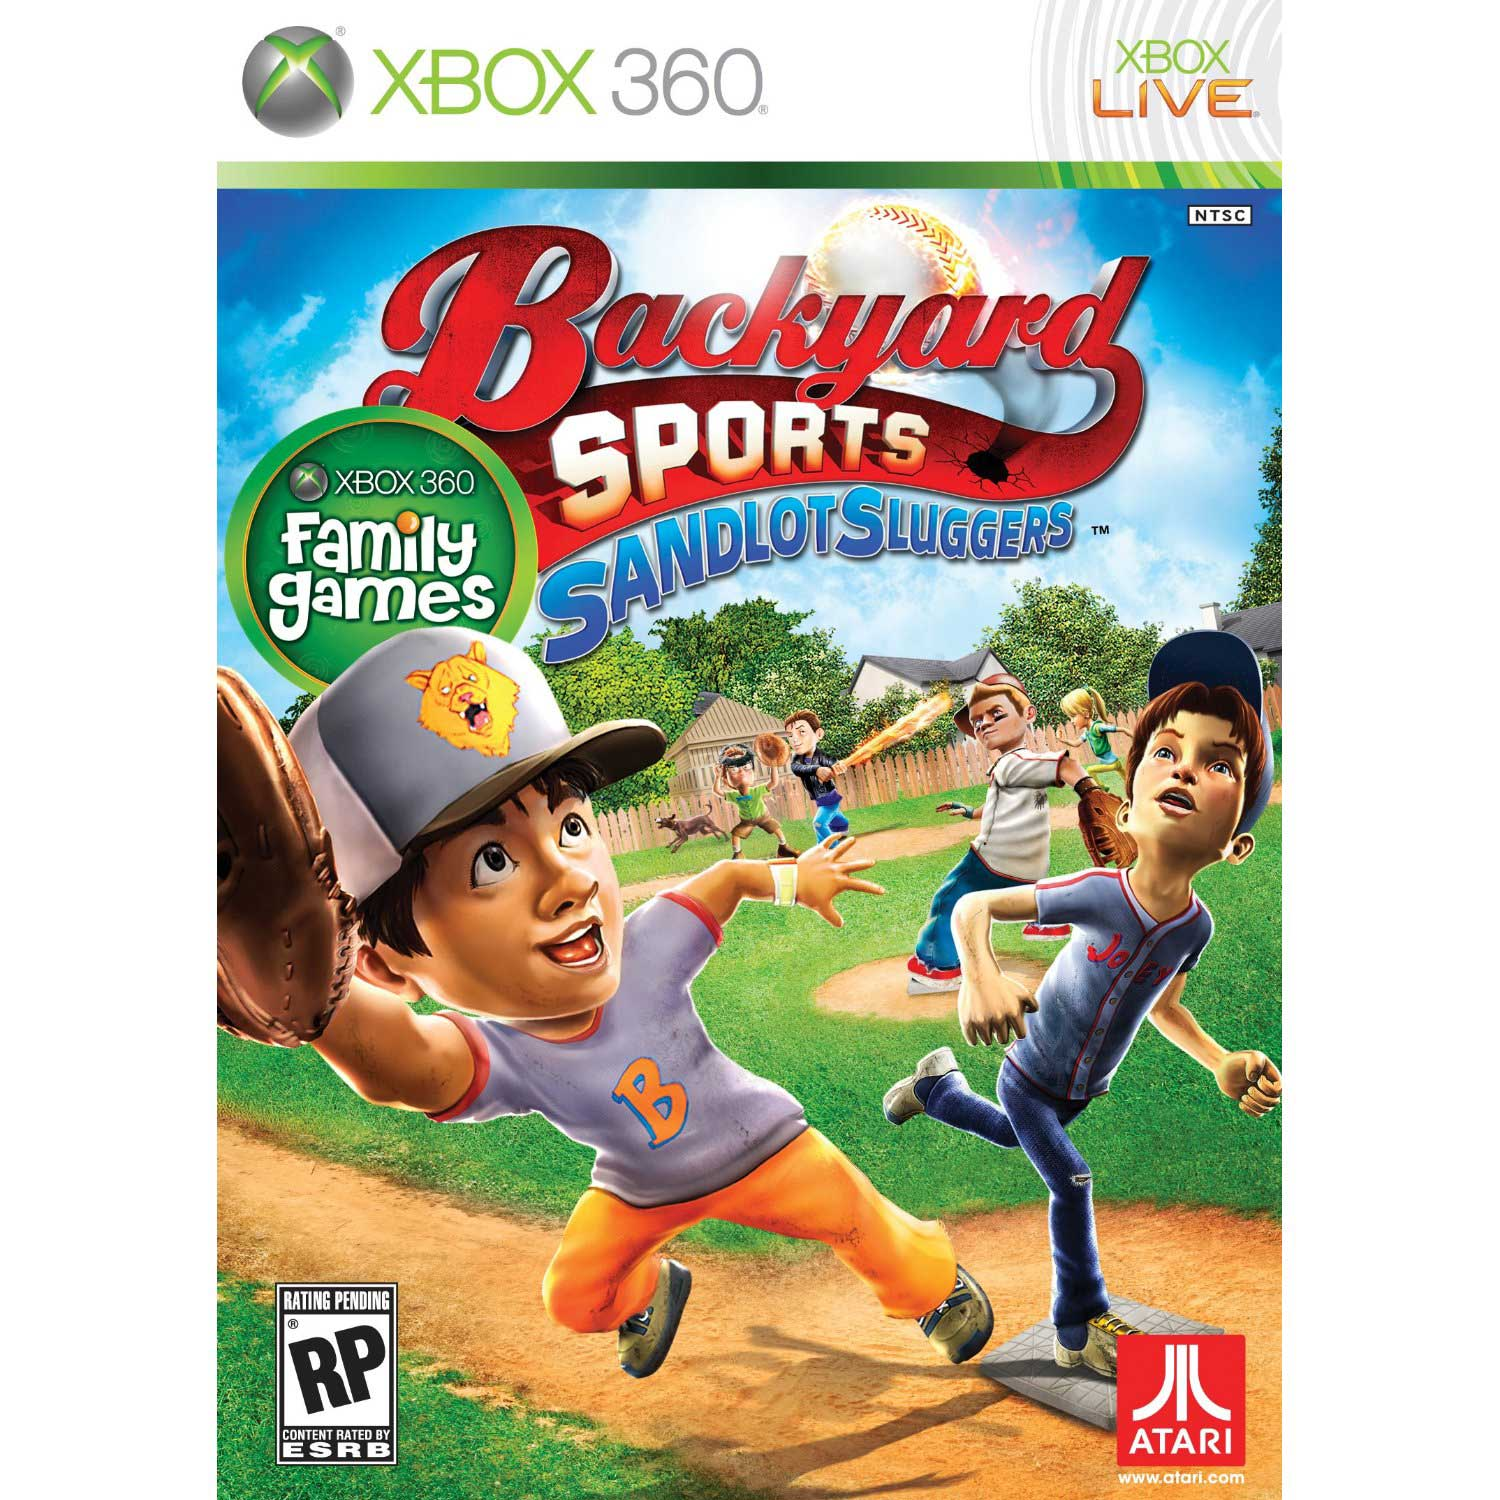 Random Topic One: Backyard Sports